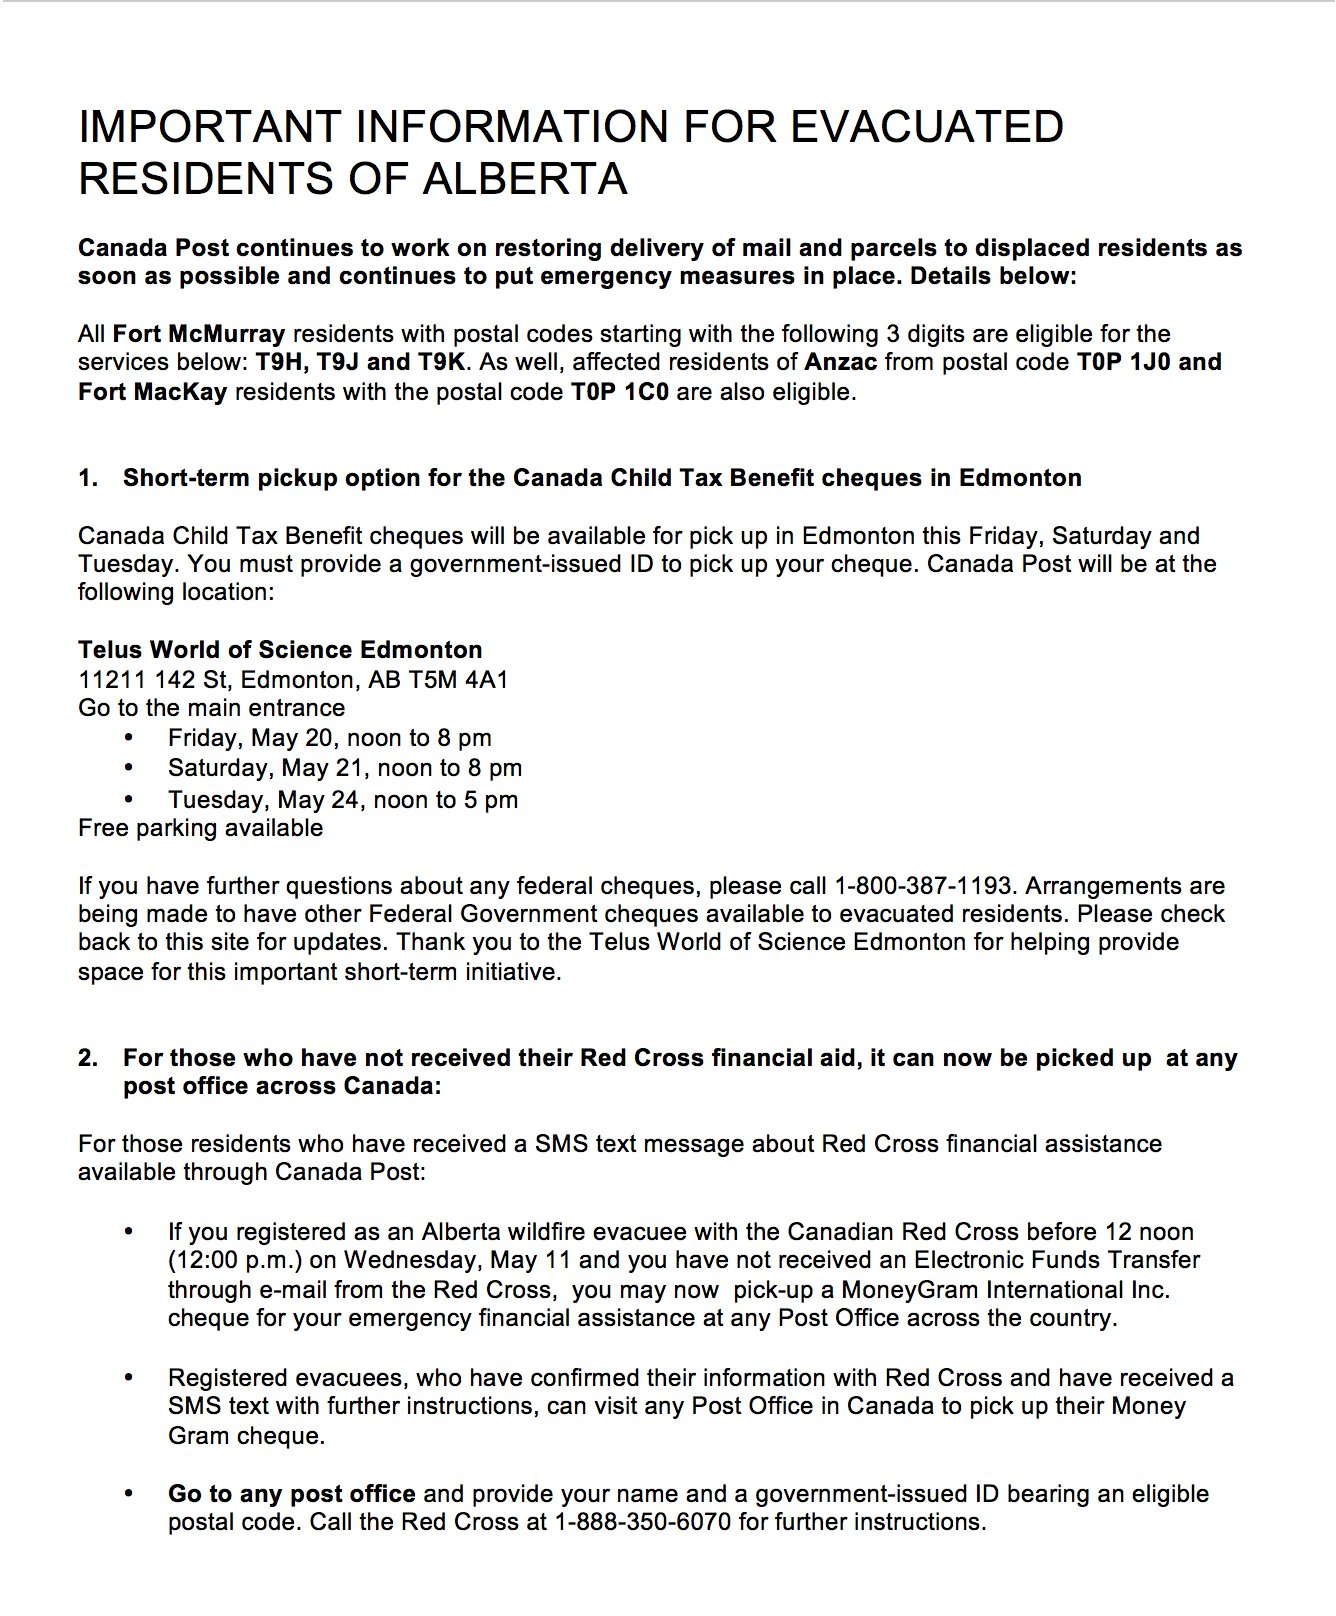 """Canada Post on Twitter: """"Information for evacuated residents of  #FortMcMurray #FortMcCay #Anzac #Alberta https://t.co/O4Yk4E6pX5  #FortMacFire… """""""